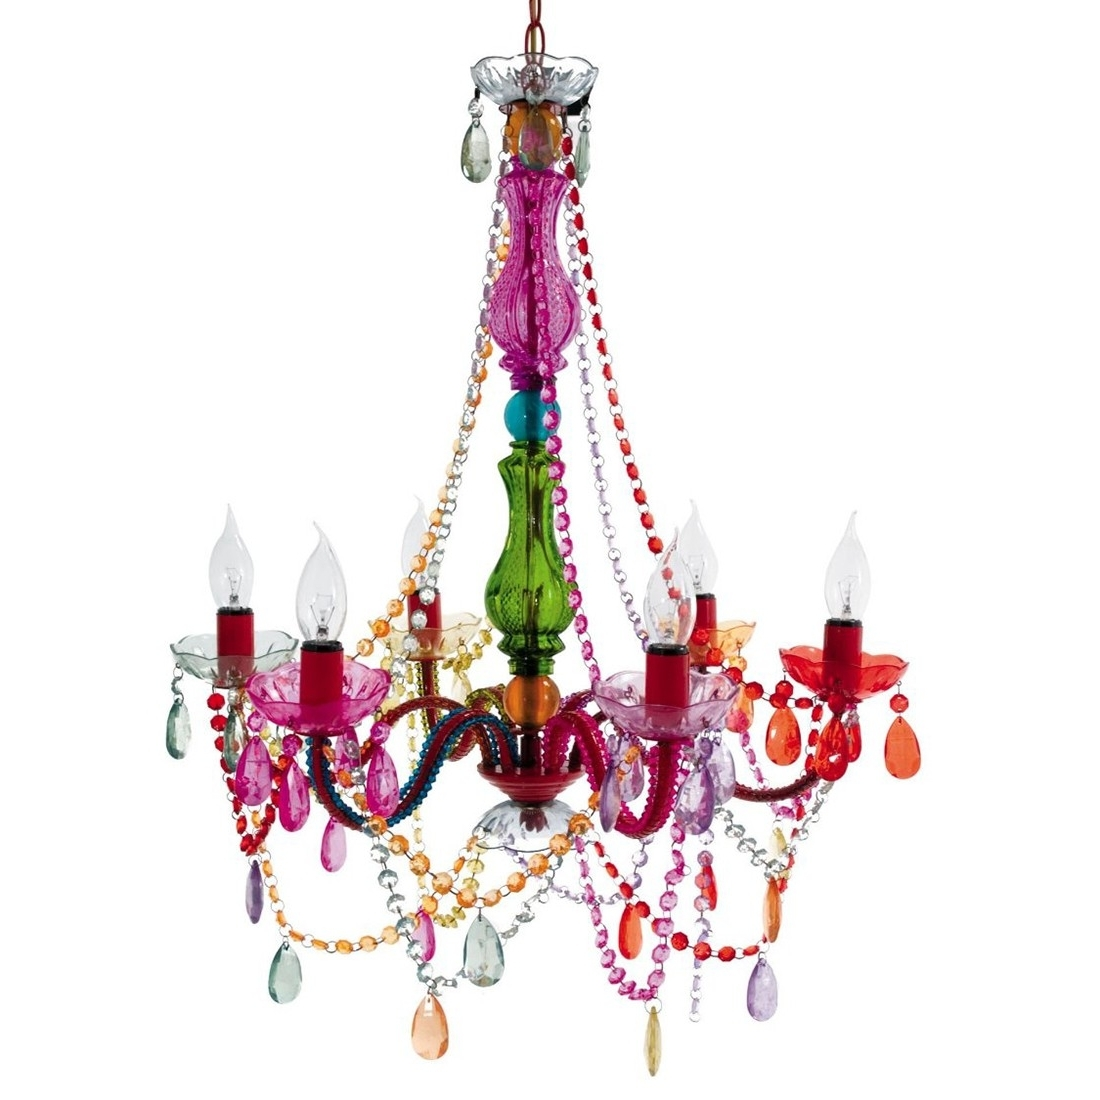 Gypsy Chandelier Adds A Touch Of Outrageous Baroque Class To Any Throughout Most Recently Released Colourful Chandeliers (View 10 of 20)